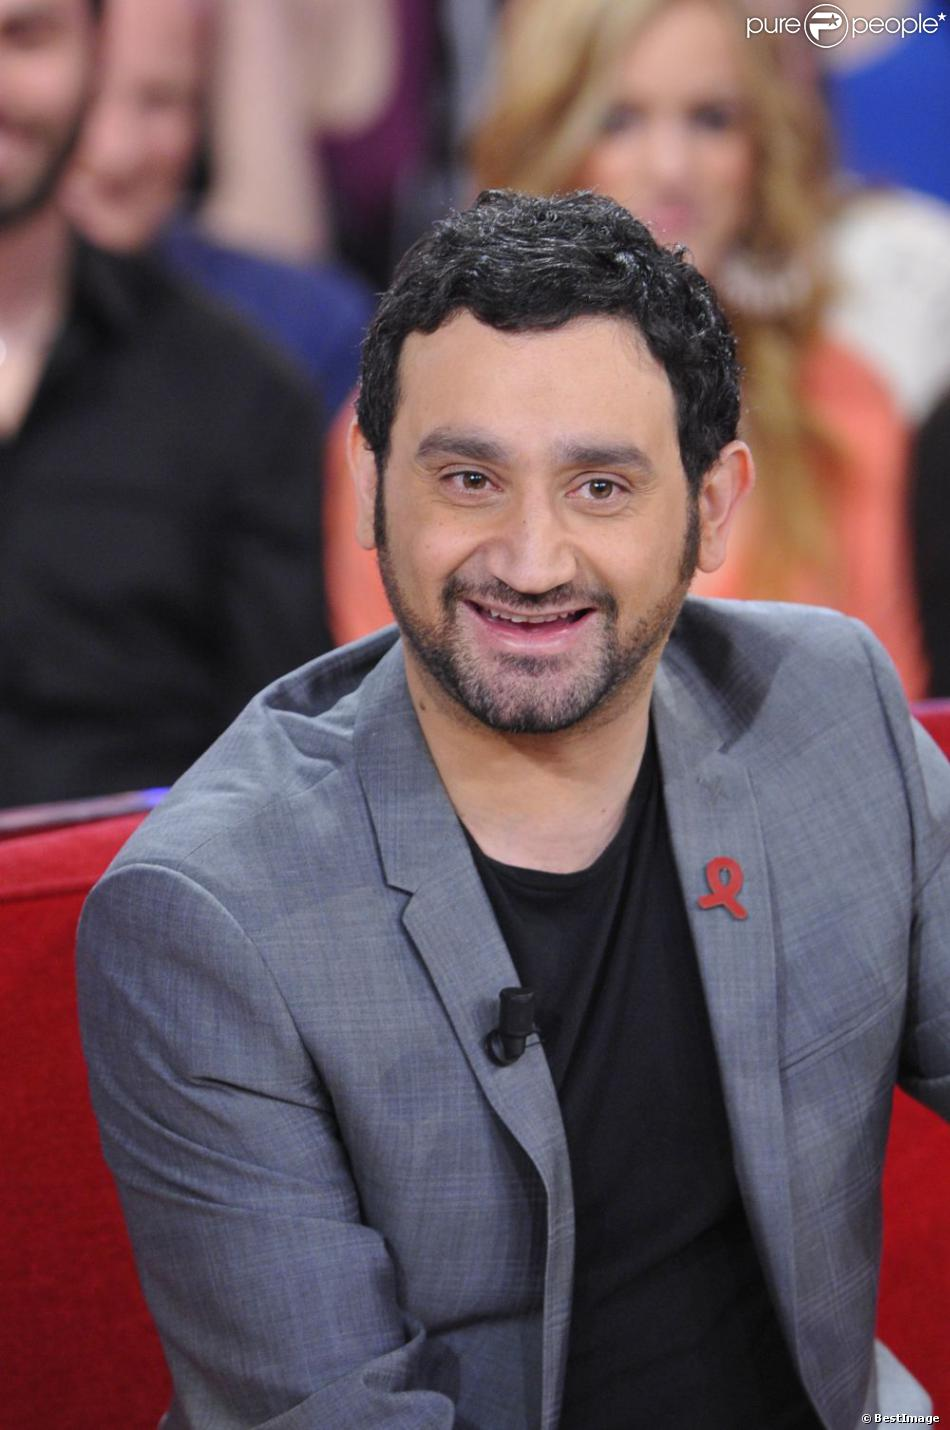 Cyril Hanouna en avril 2013 à Paris